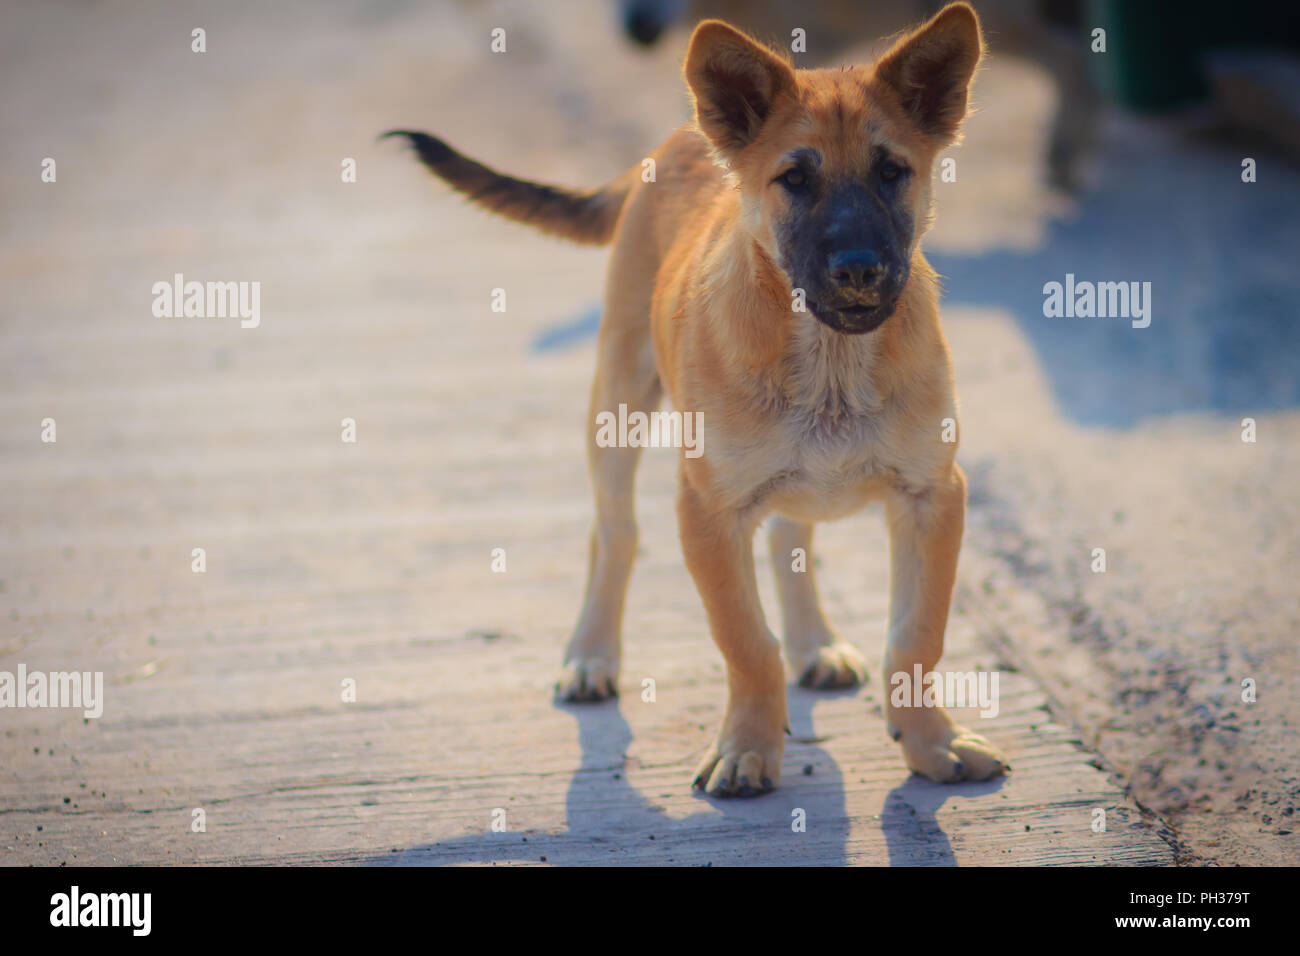 A Brown Dog That Stand On Concrete Floor In The Morning Lo Ng And Barking To The Stranger